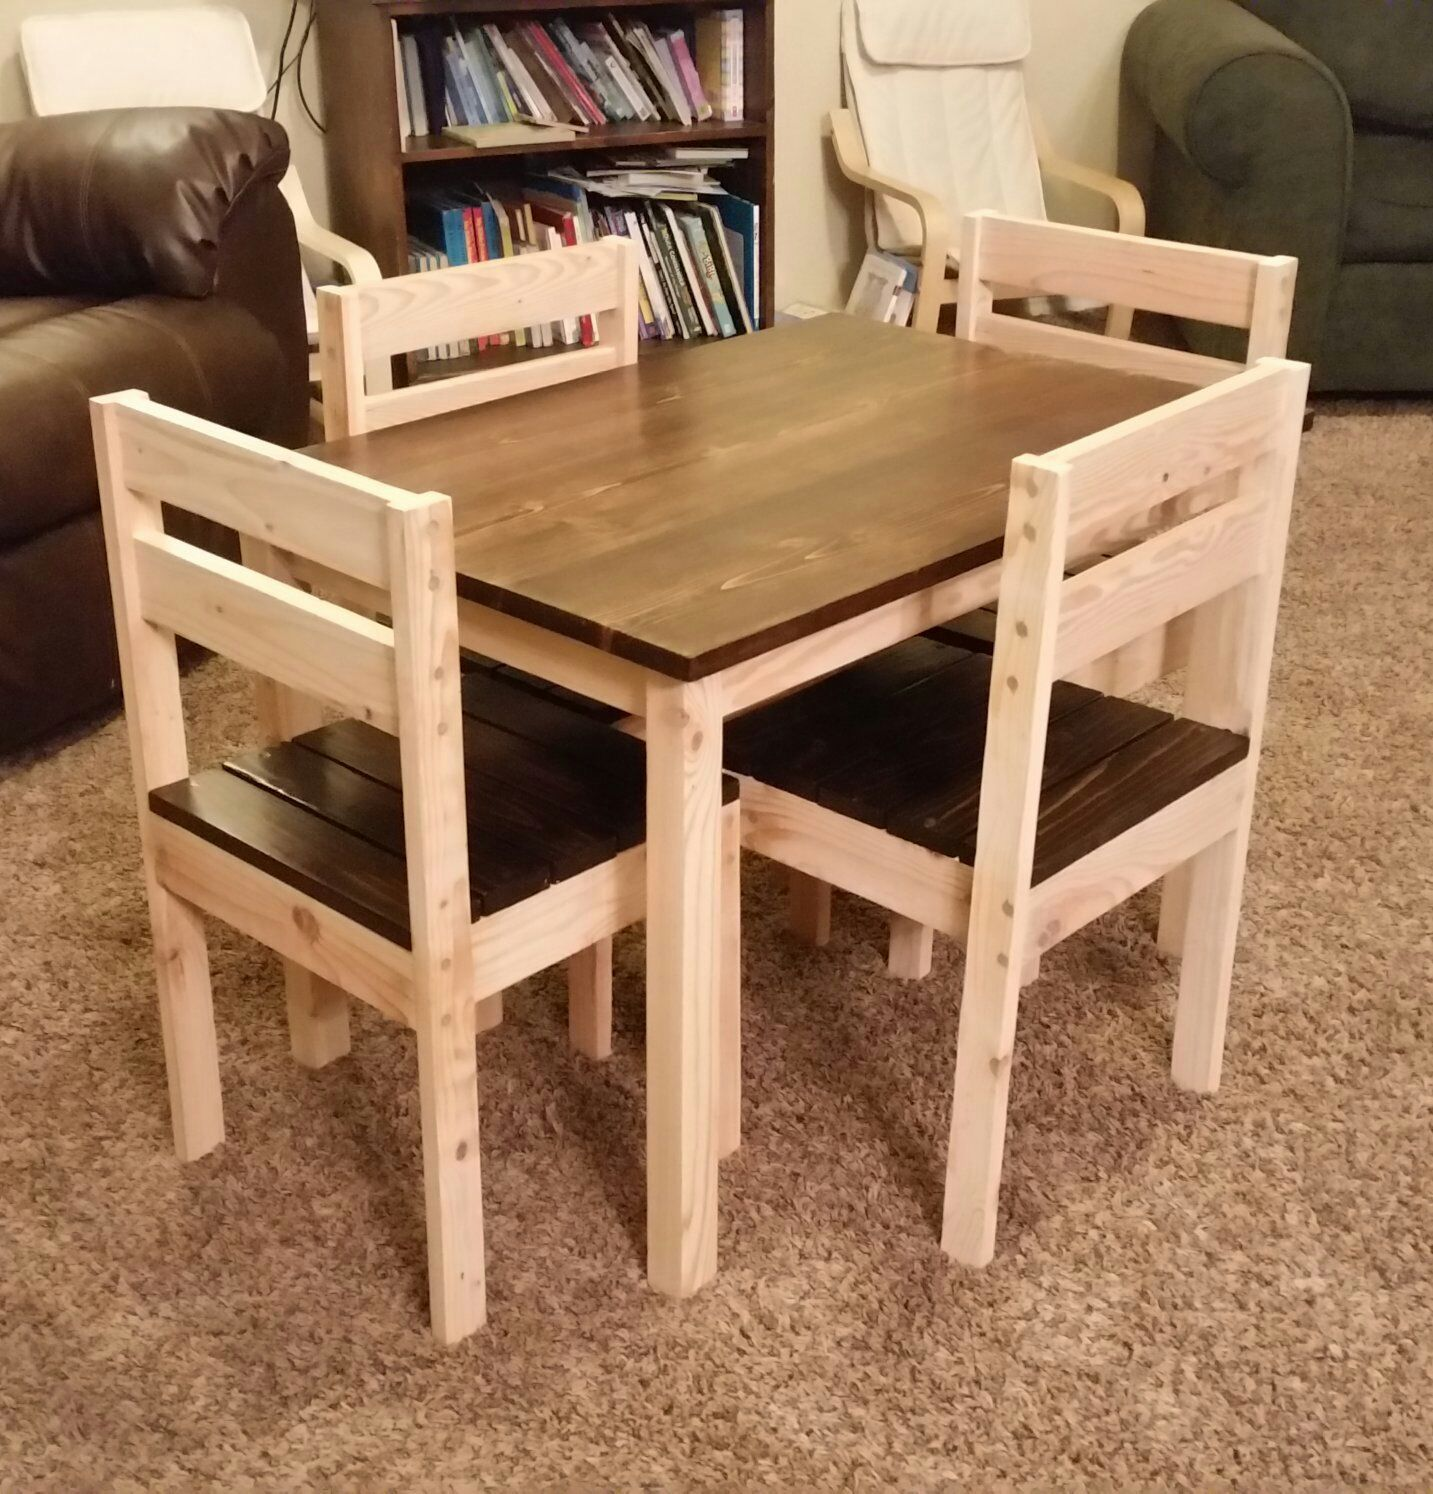 Kids Table And Chairs Do It Yourself Home Projects From Ana White